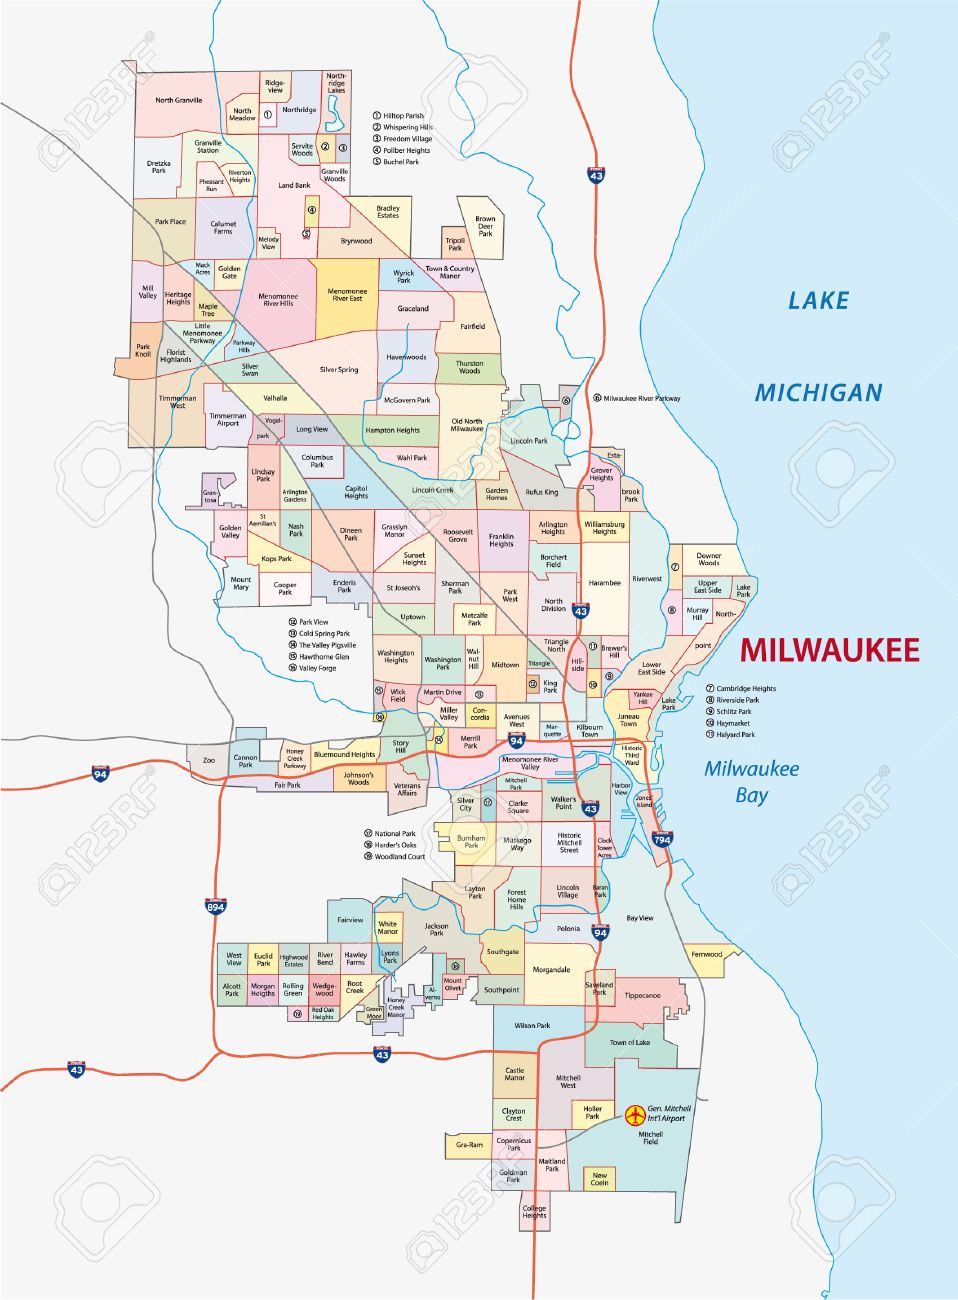 Milwaukee Neighborhood Map Royalty Free Cliparts, Vectors, And Stock ...